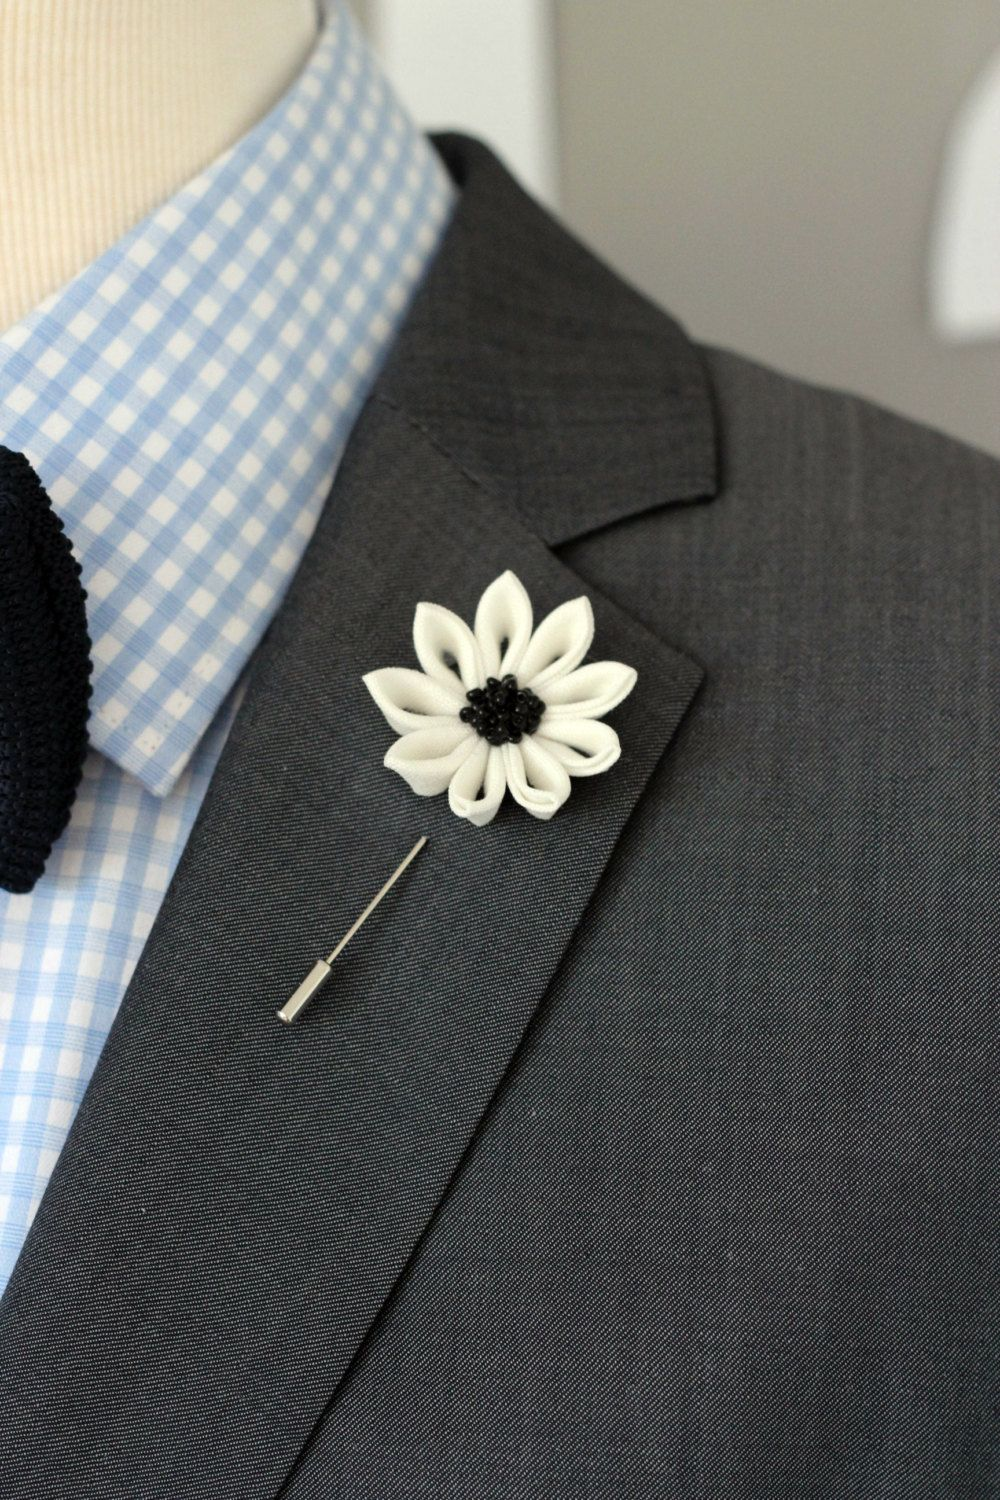 Elegant white flower lapel pin mens lapel flower by nevestica elegant white flower lapel pin mens lapel flower by nevestica mightylinksfo